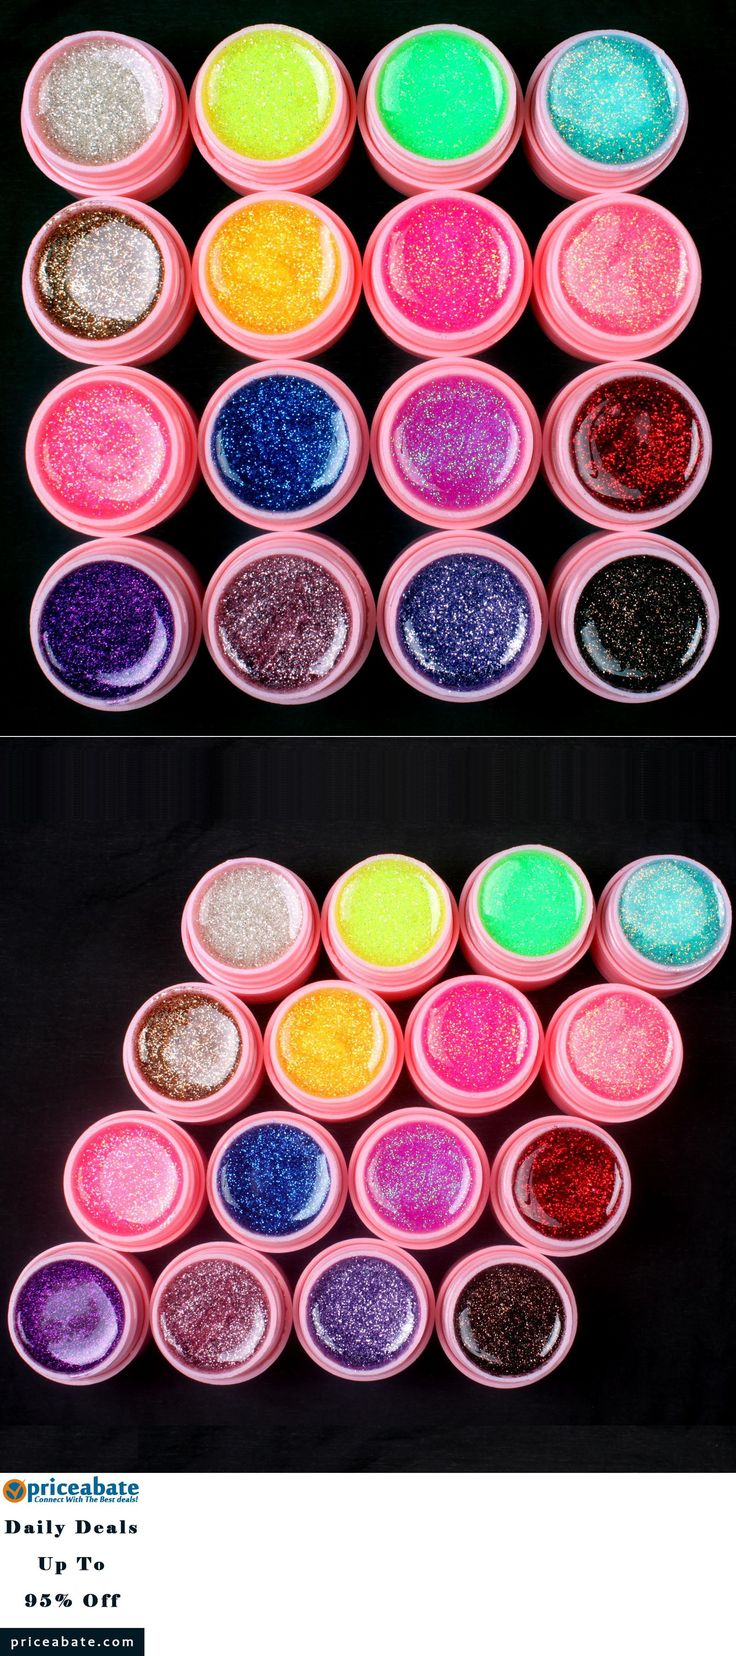 #priceabatedeals New 16 PCS Glitter Mix Color UV  Gel Acrylic Builder Set for Nail Art Tips pink - Buy This Item Now For Only: $9.11